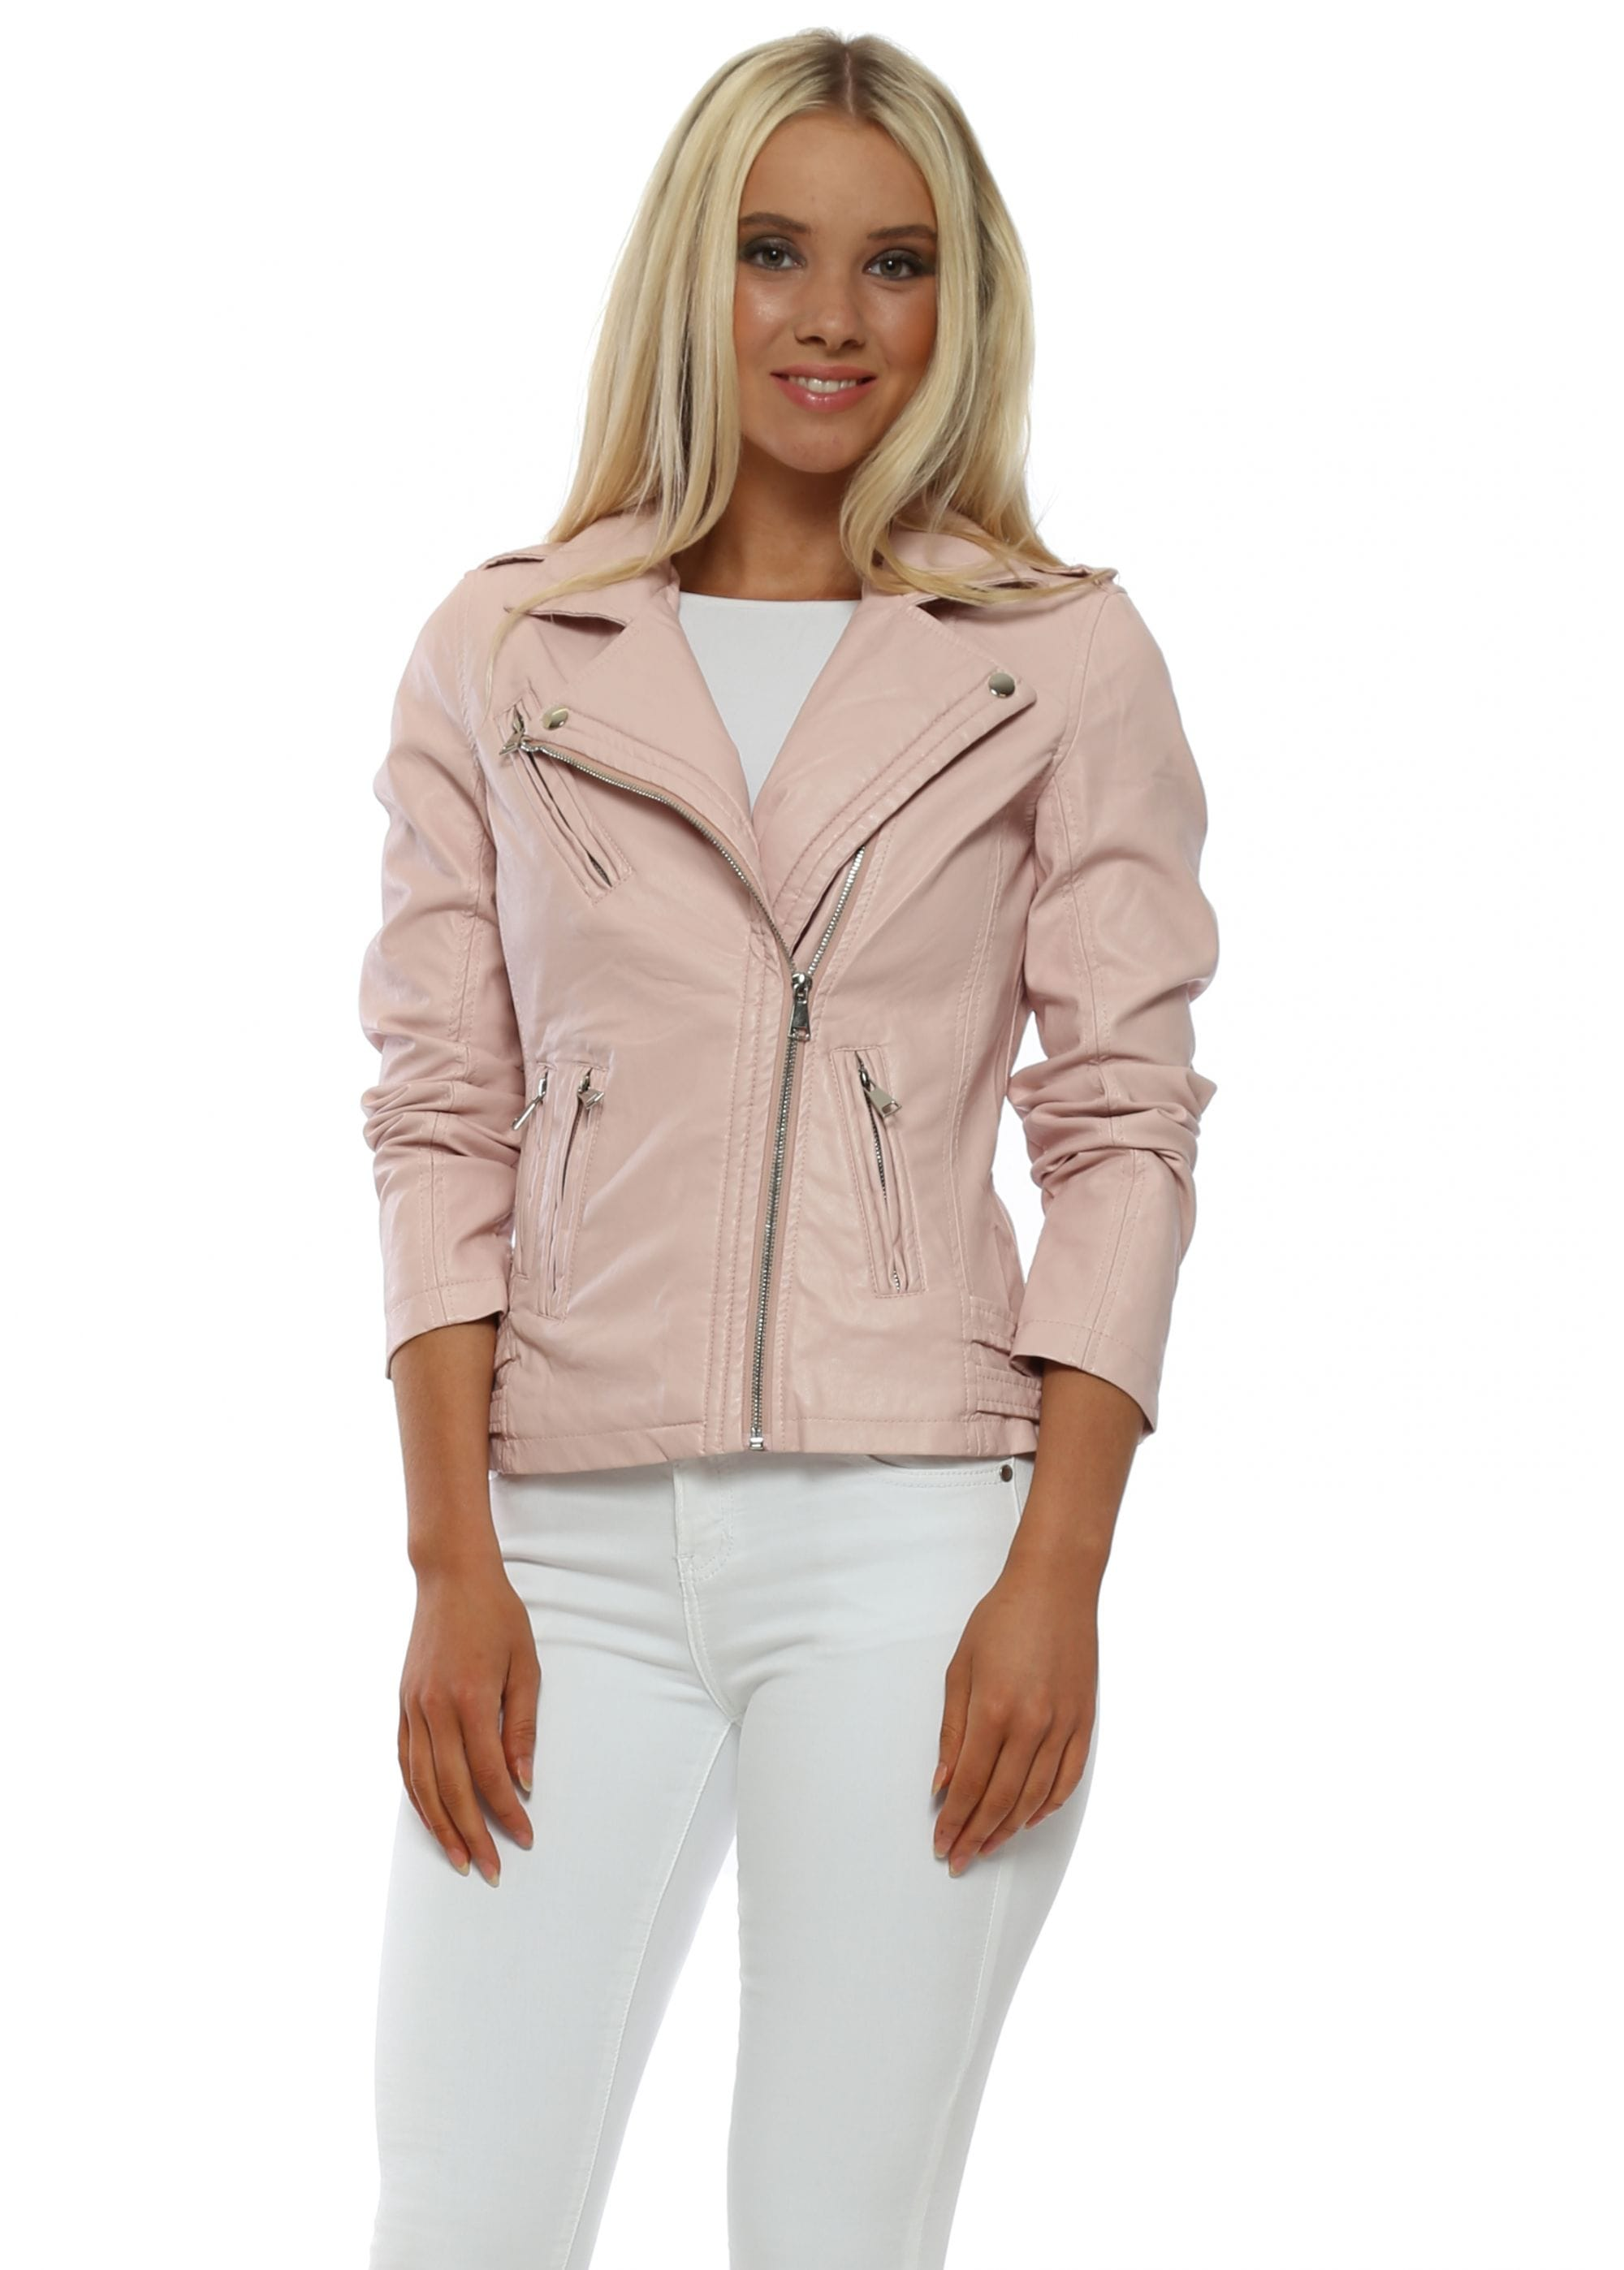 633a5b929fd6 Baby Pink Faux Leather Biker Jacket by Orice